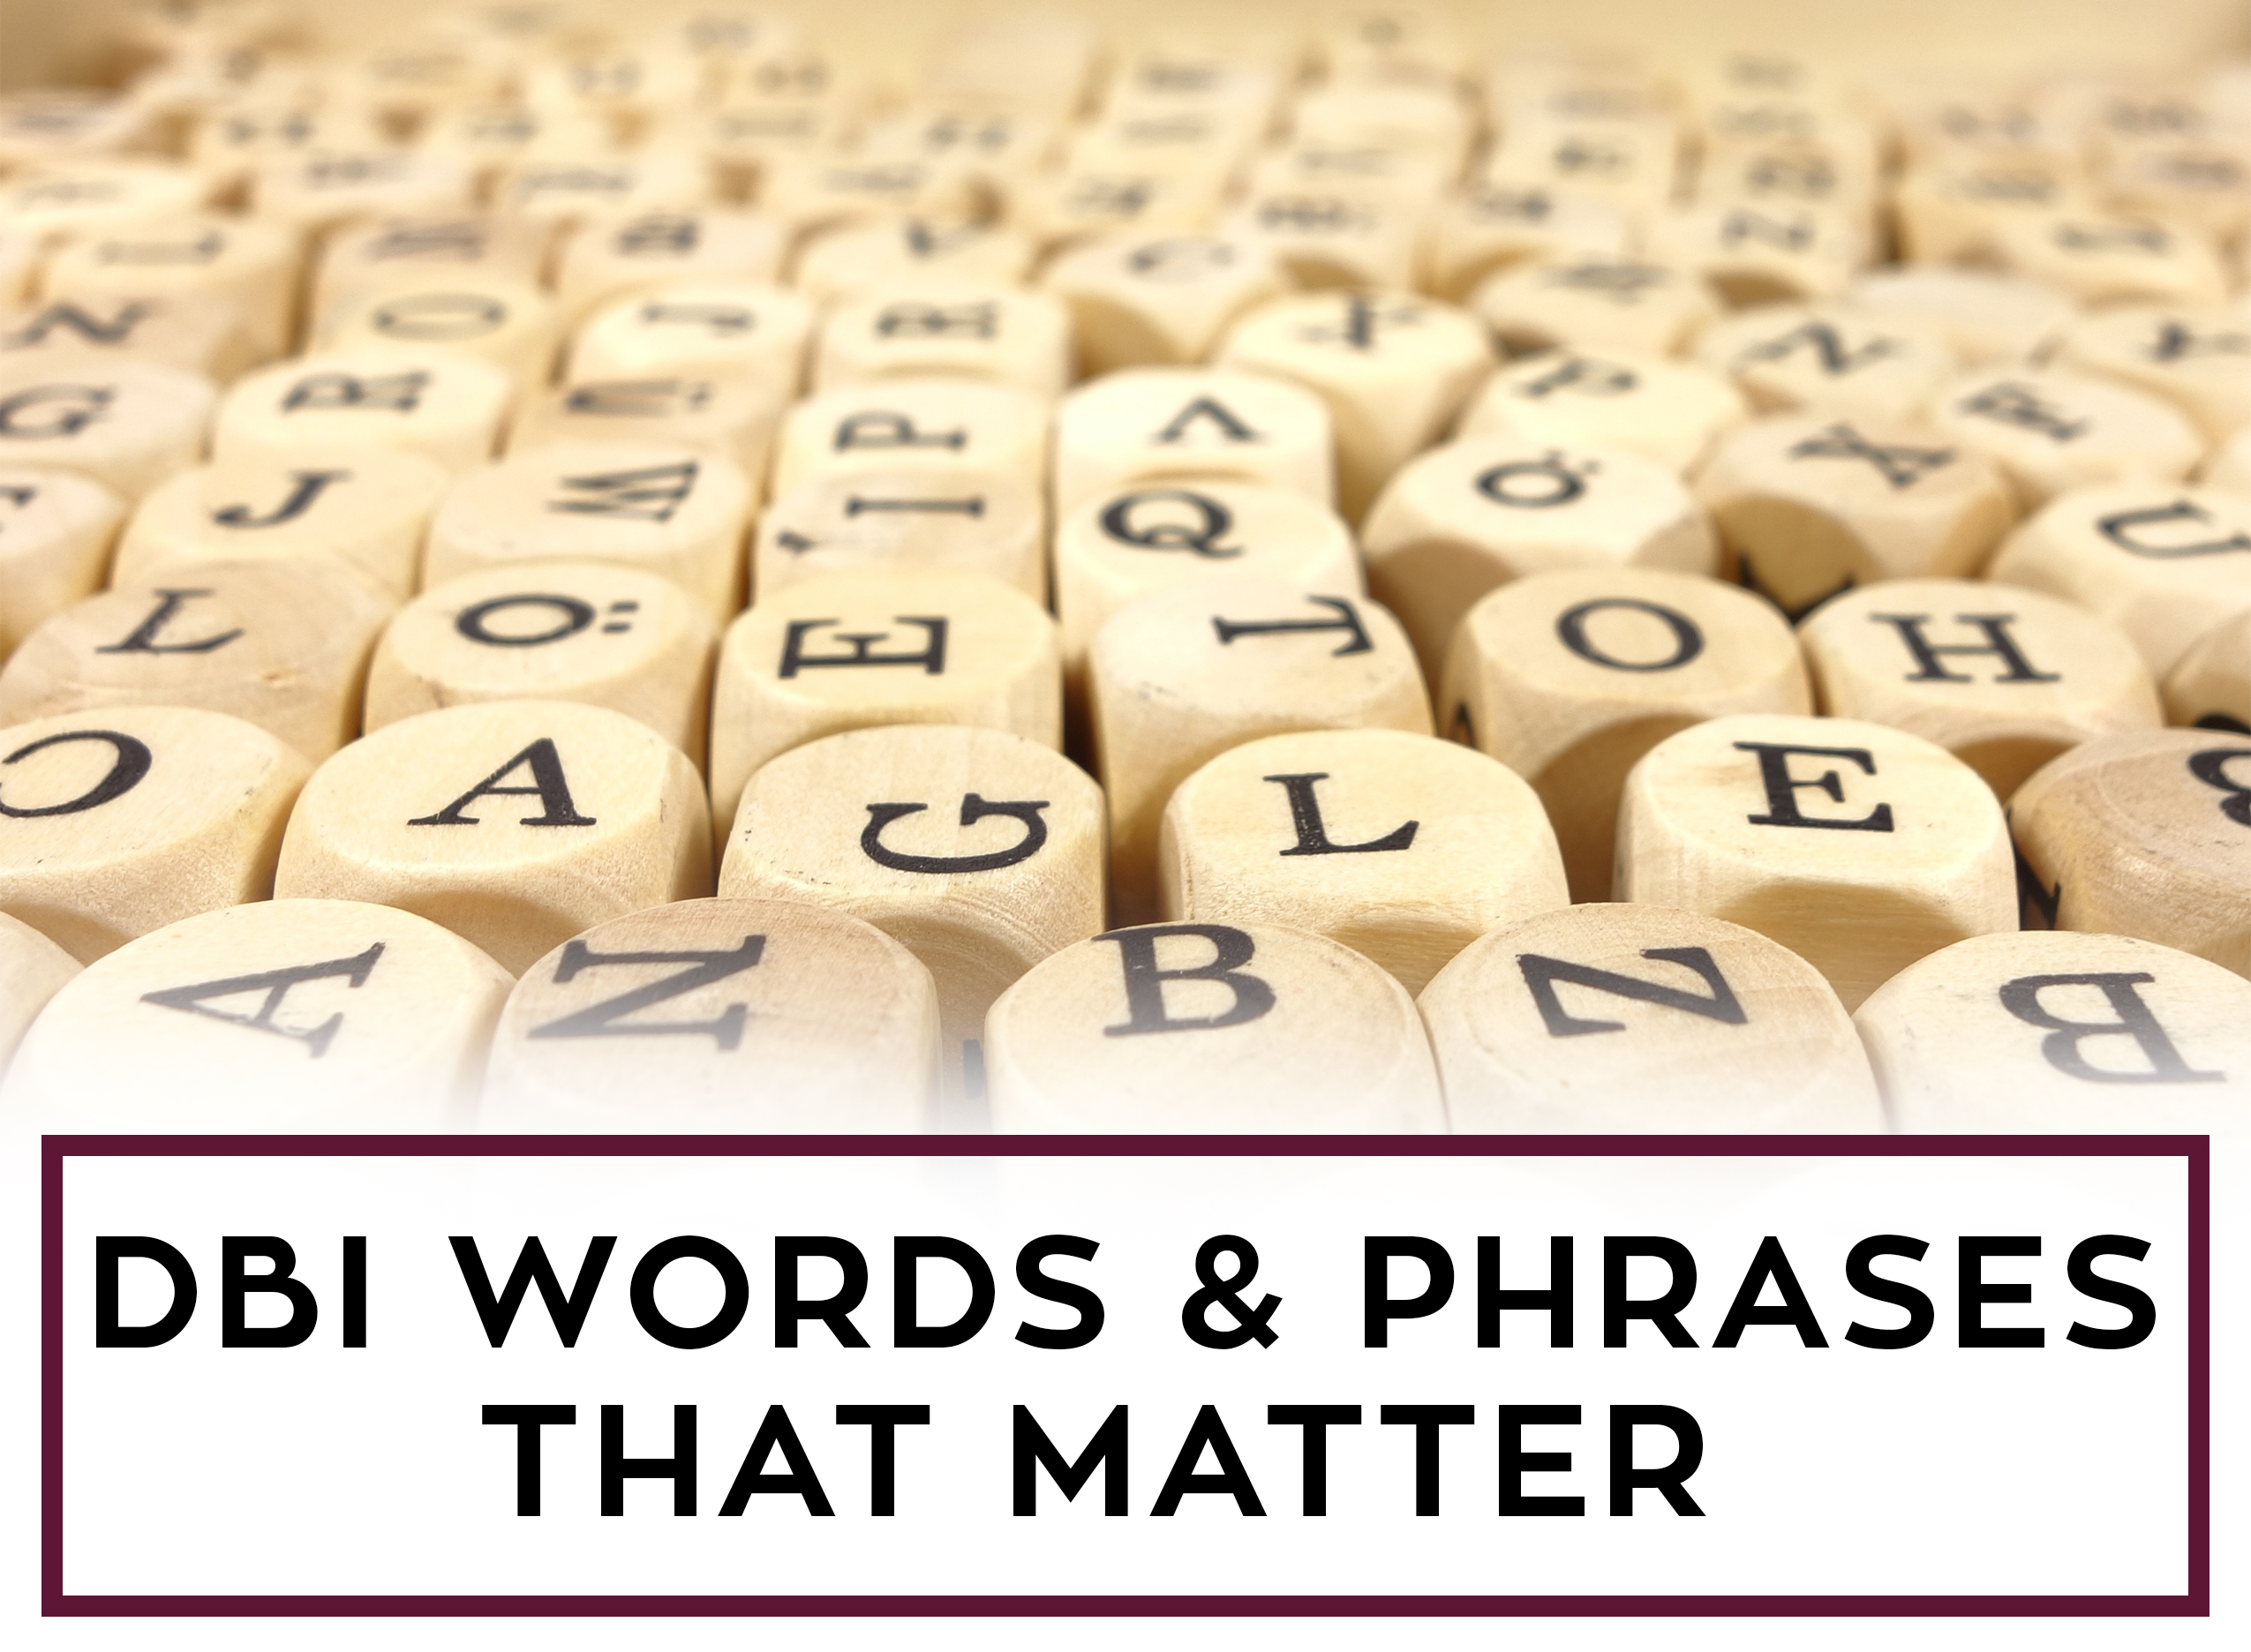 DBI Words and Phrases That Matter